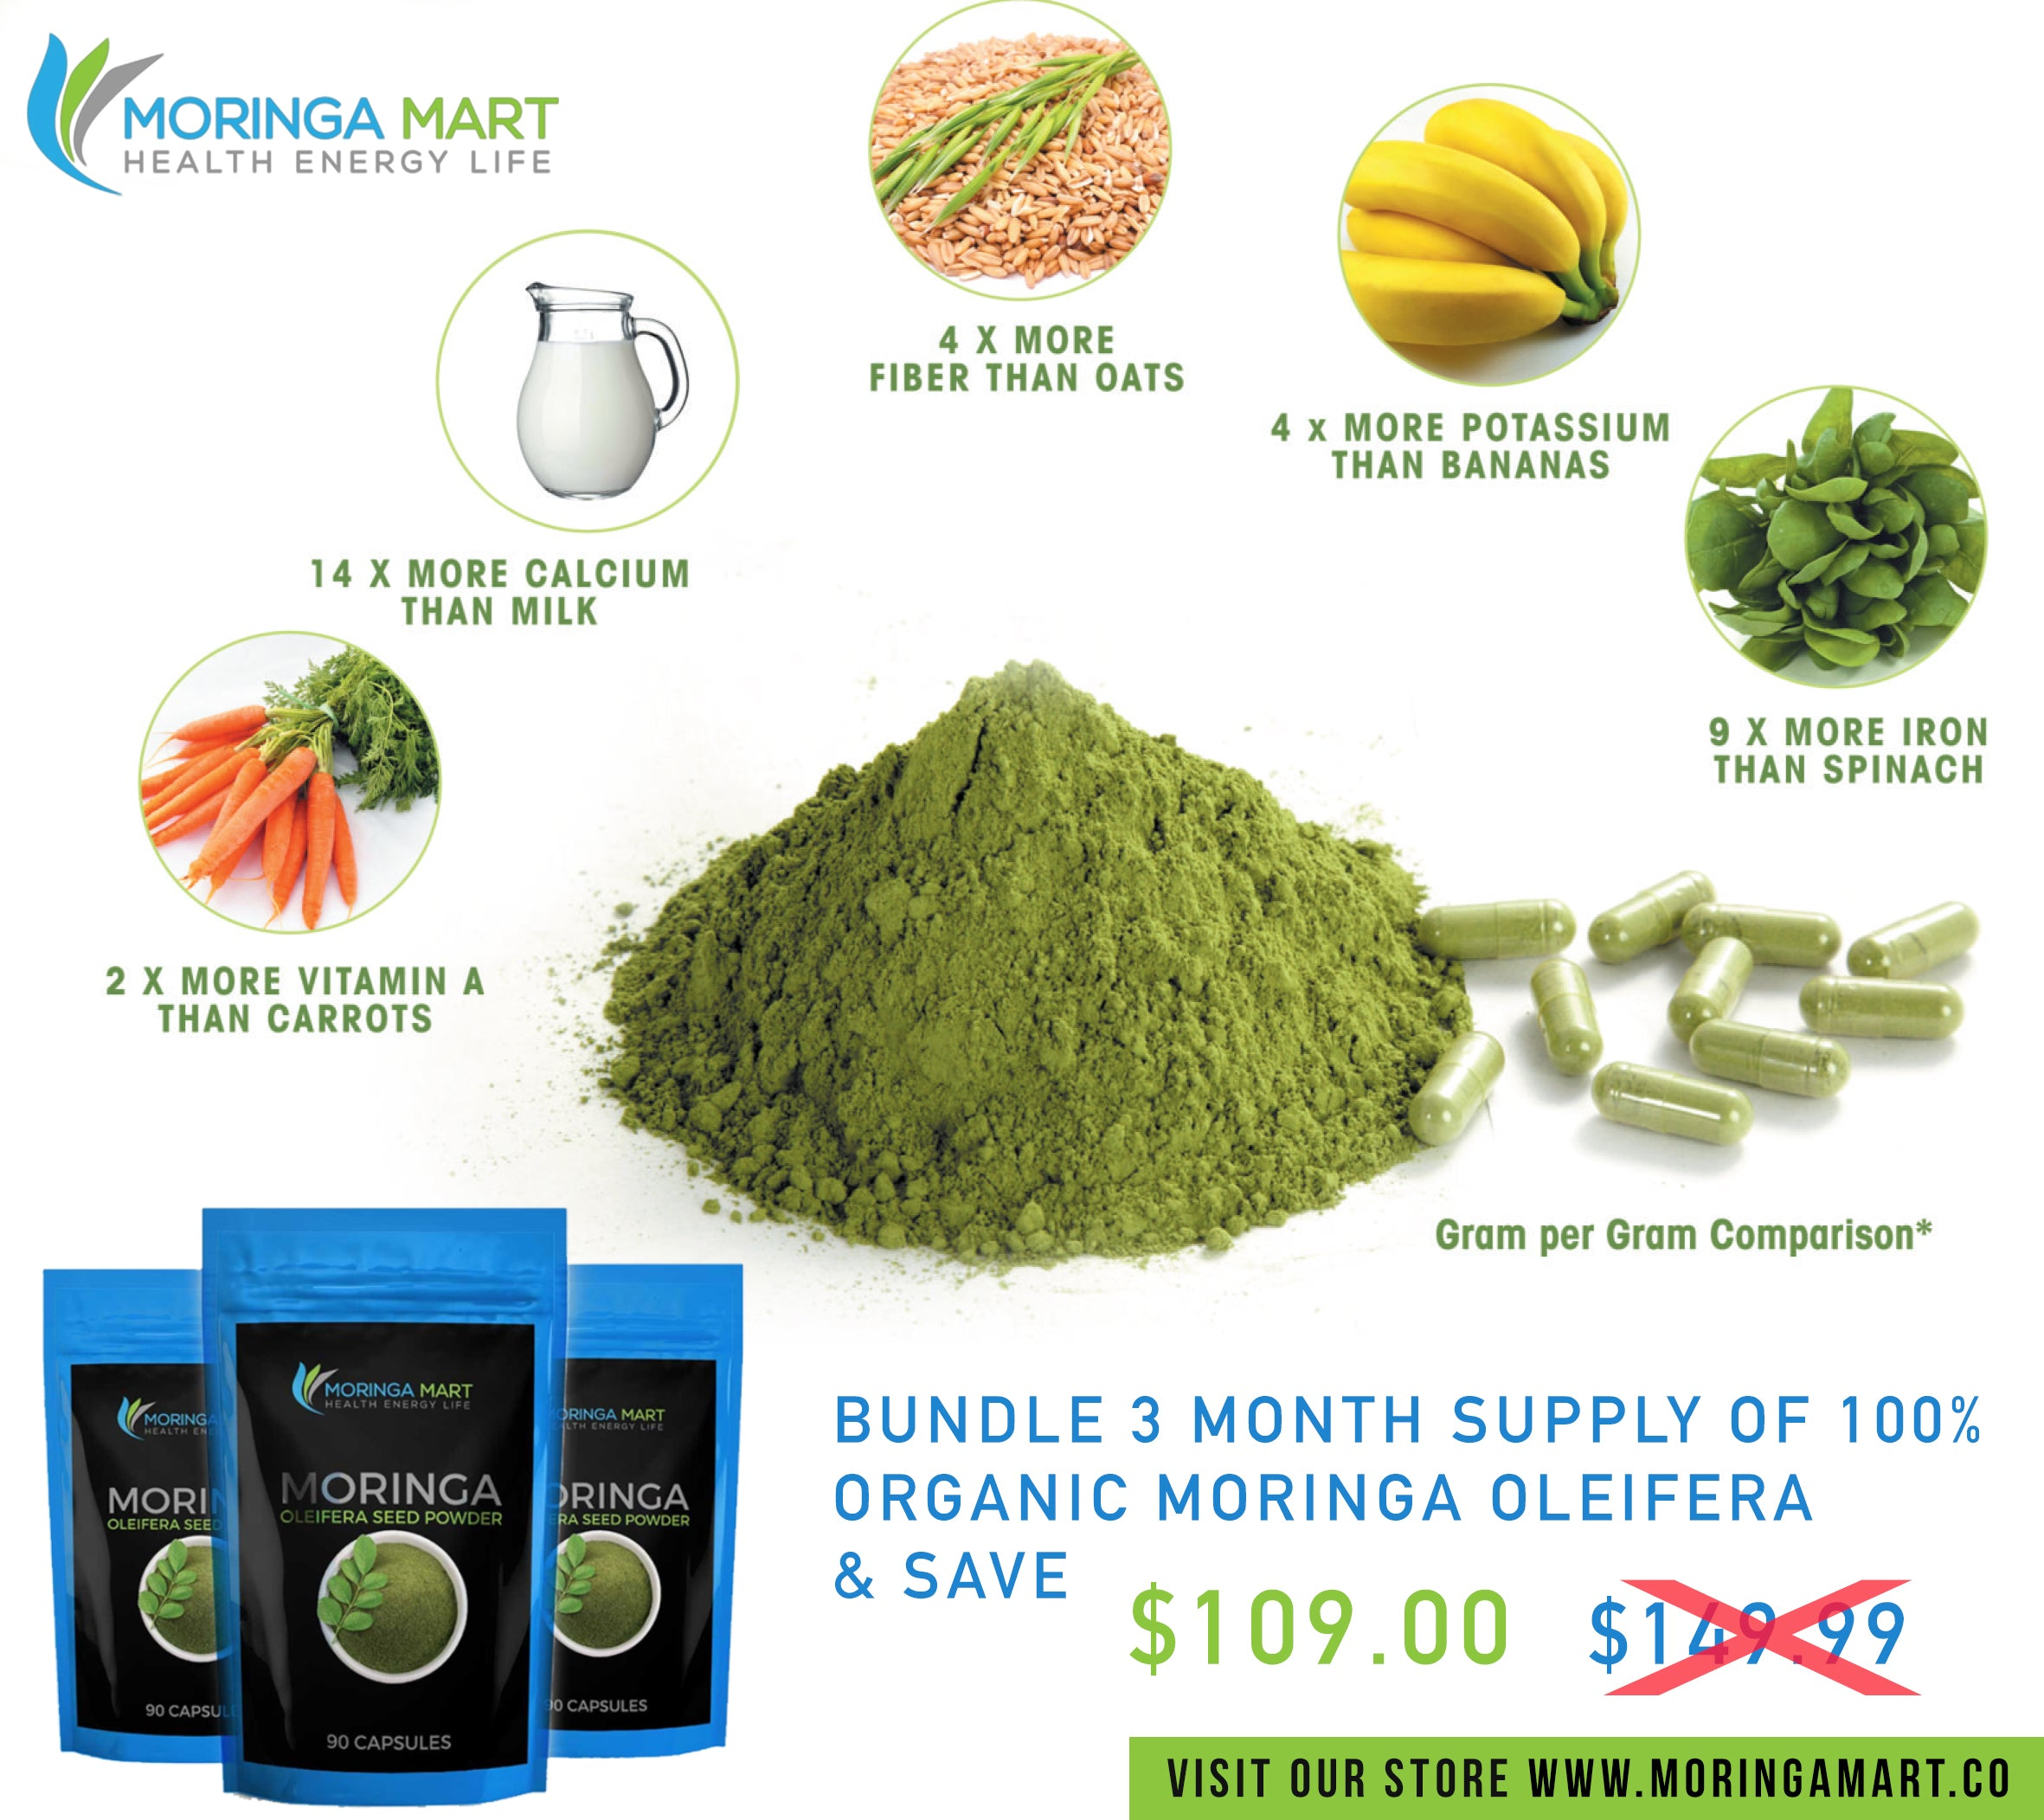 30 Day Supply of 100% Pure Organic Moringa Oleifera